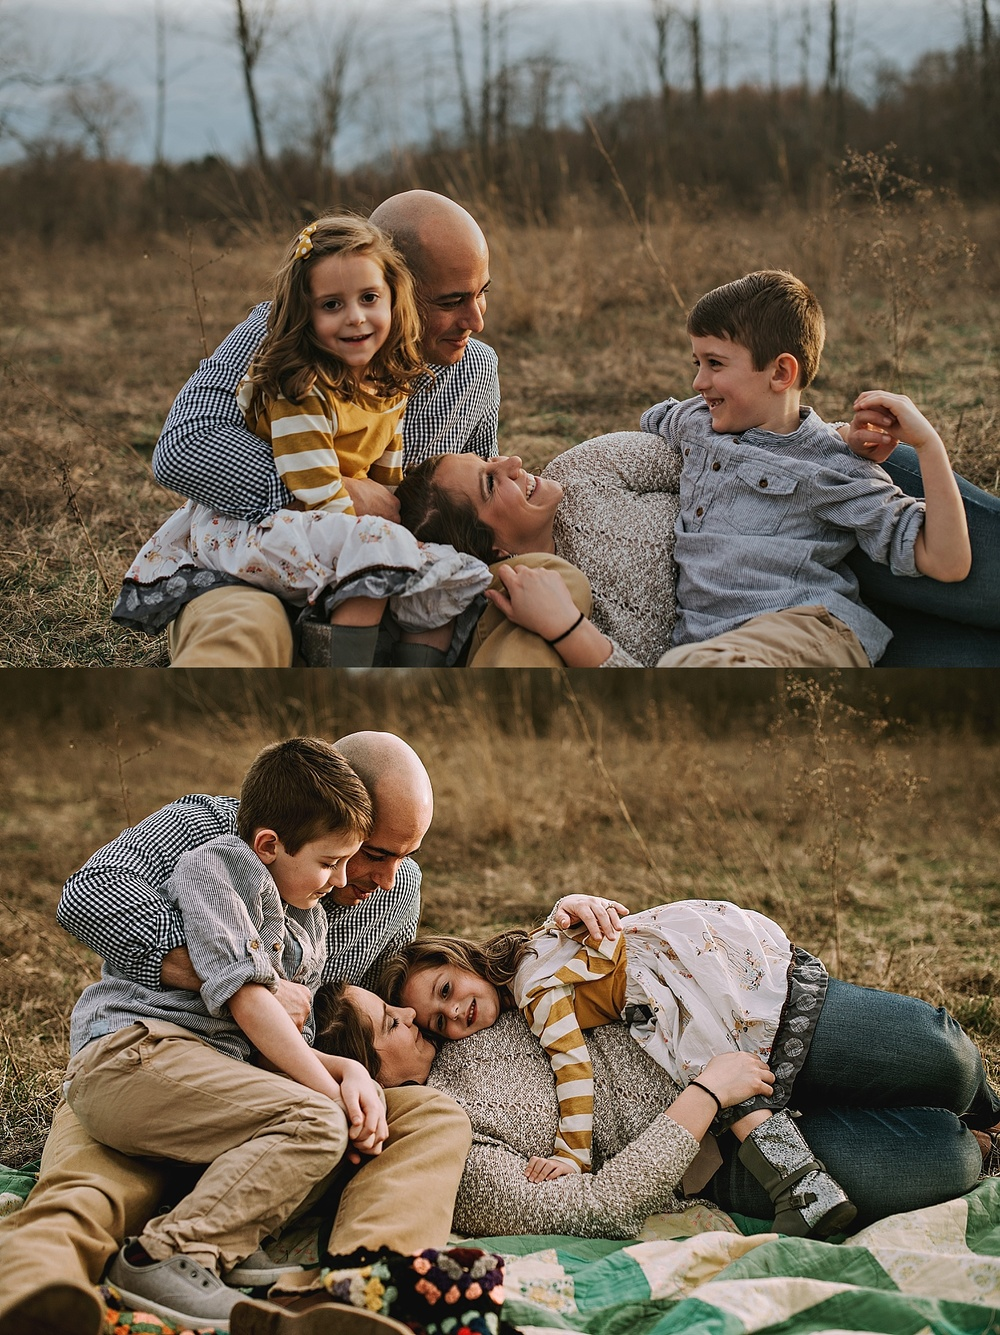 lifestyle-family-photographer-outdoors-lauren-grayson-cleveland-ohio-akron-canton-photography